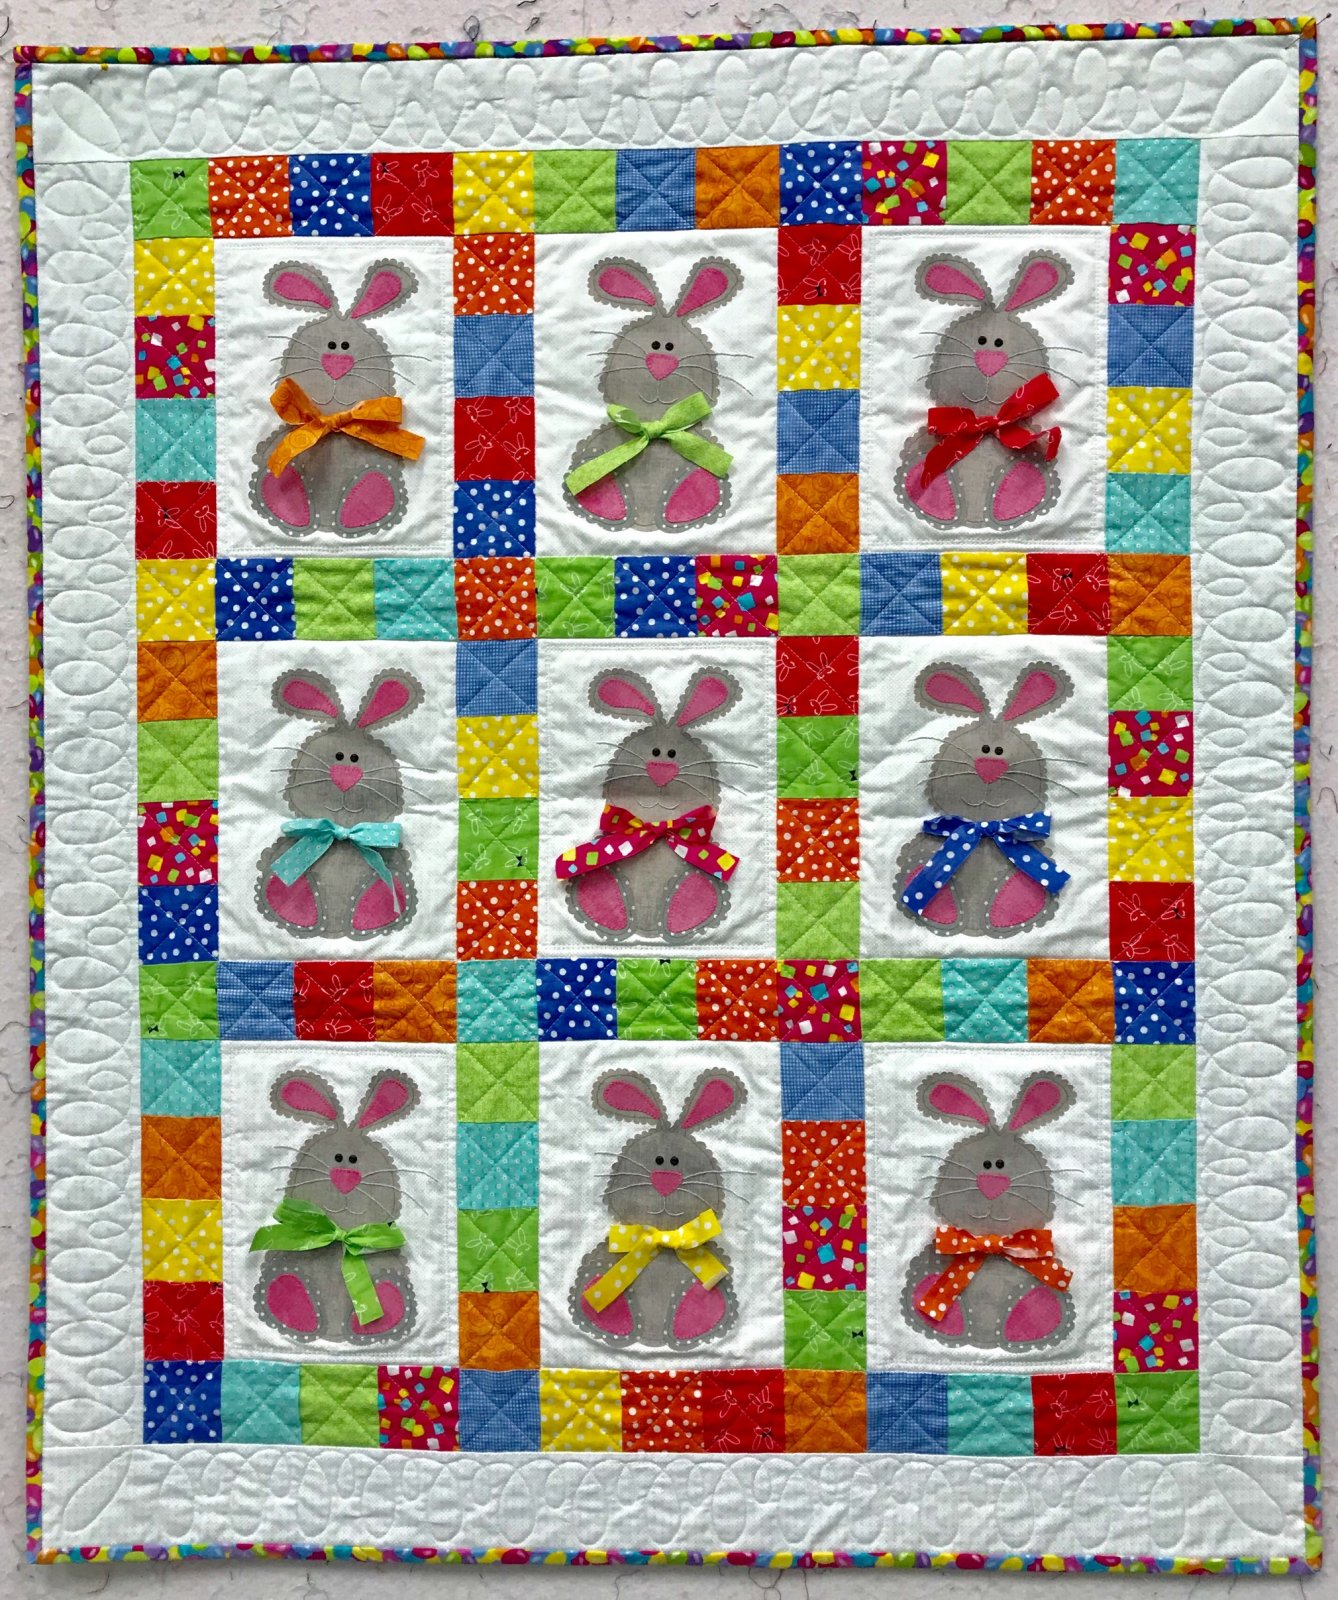 Bunnies and Bows Quilt Kit